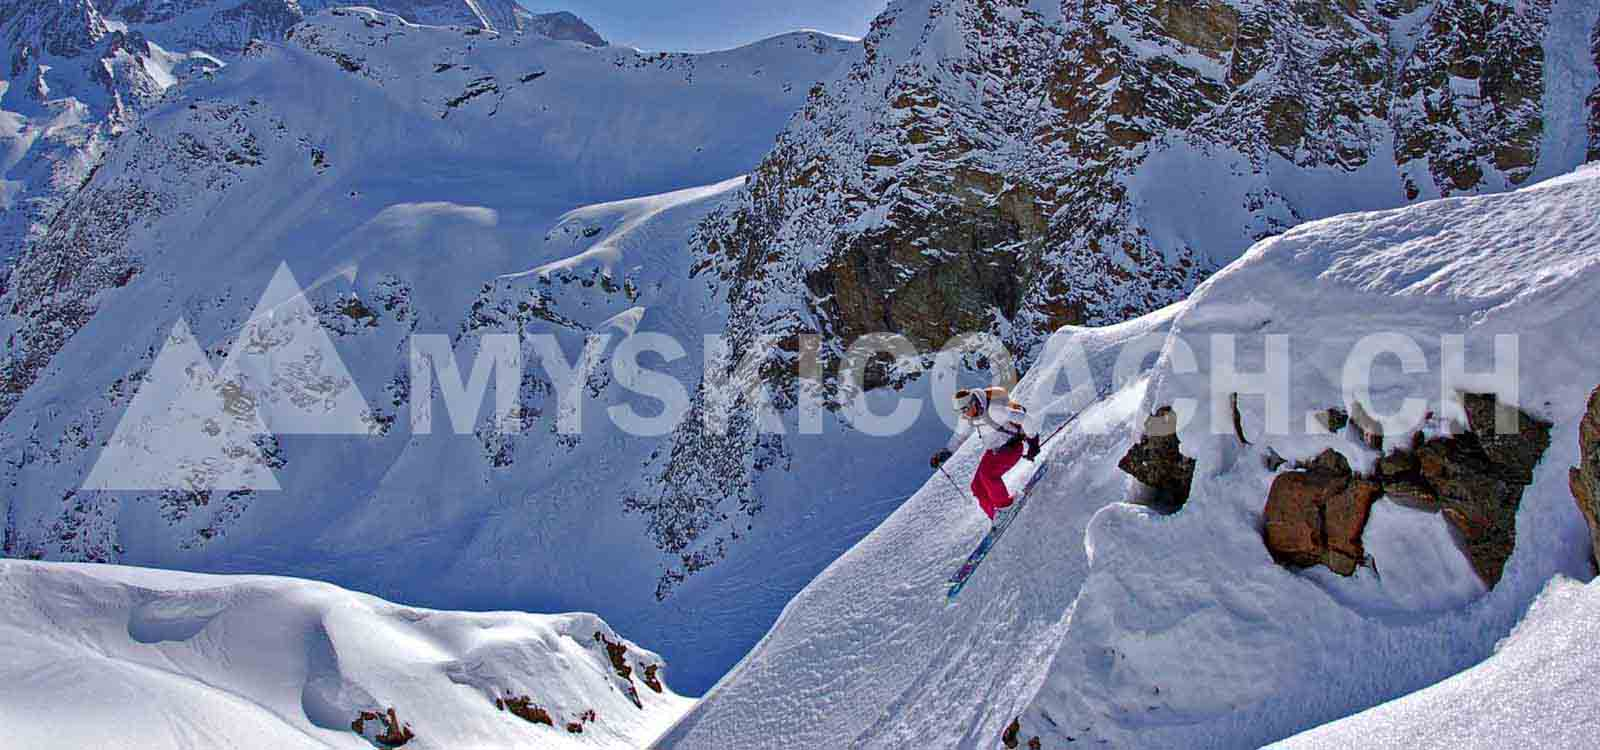 Off piste advanced private ski lessons for adults - Freeride ski coaching